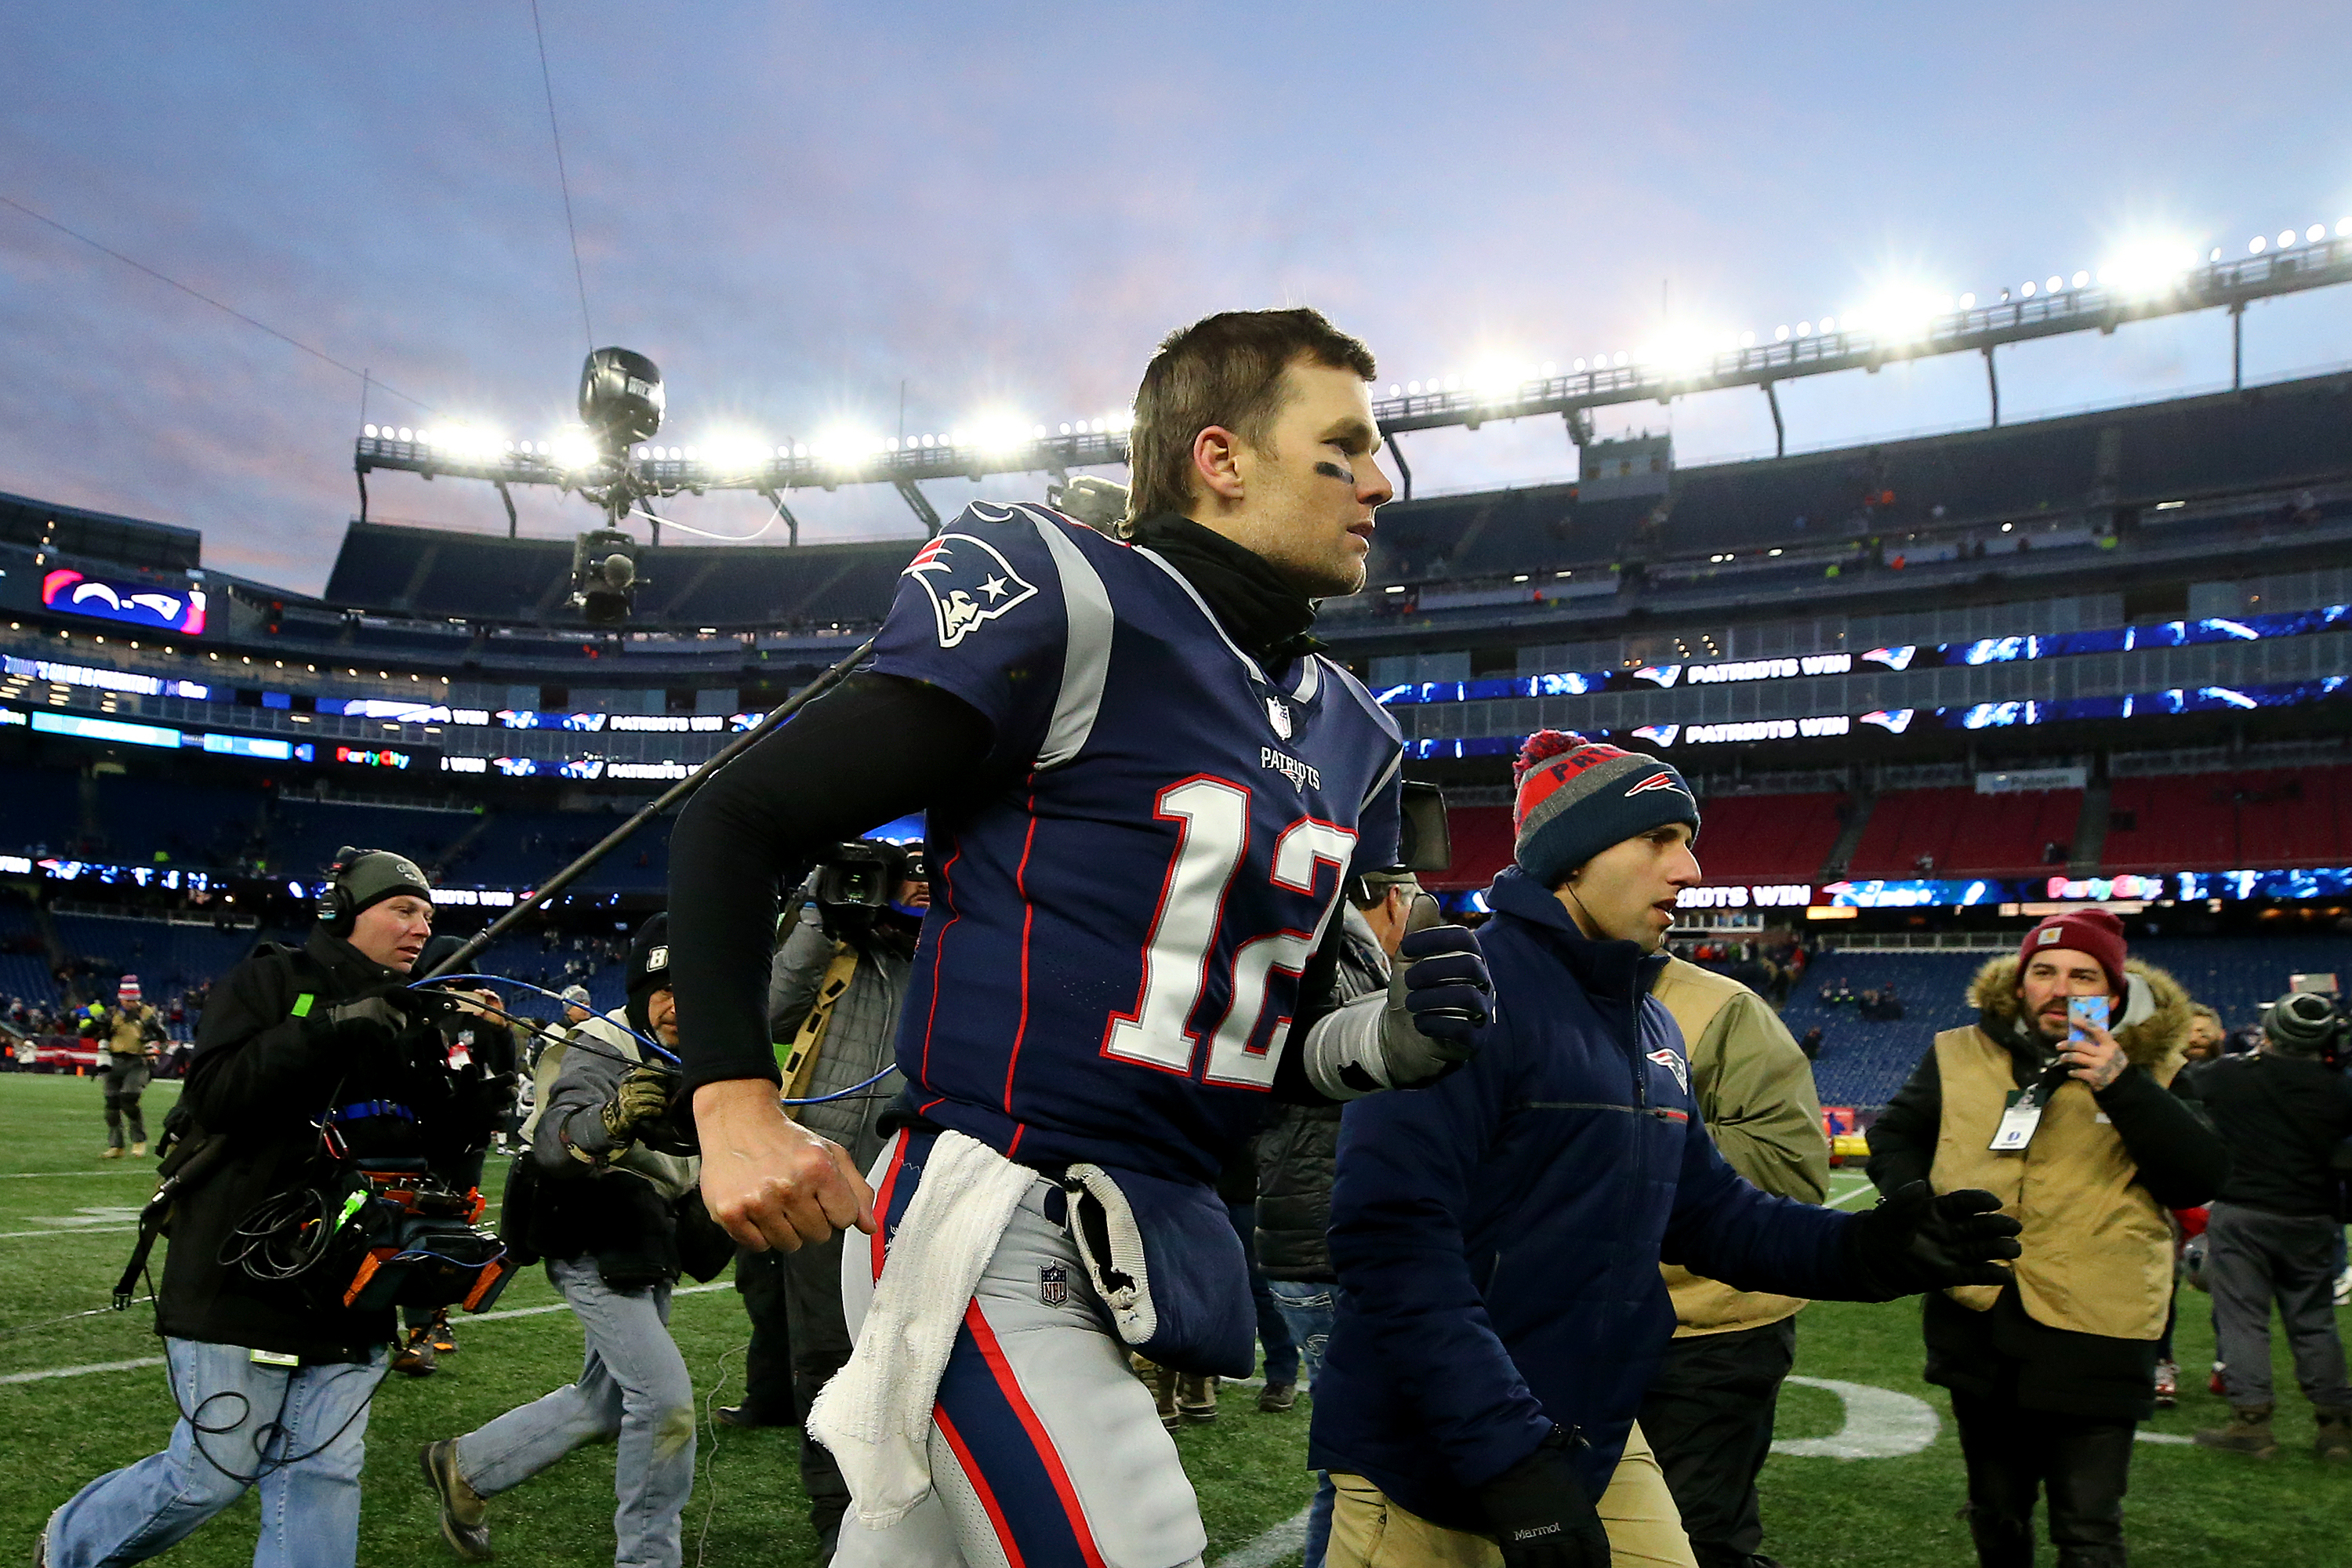 NFL fans overwhelmingly don't want the Patriots to go to the Super Bowl again